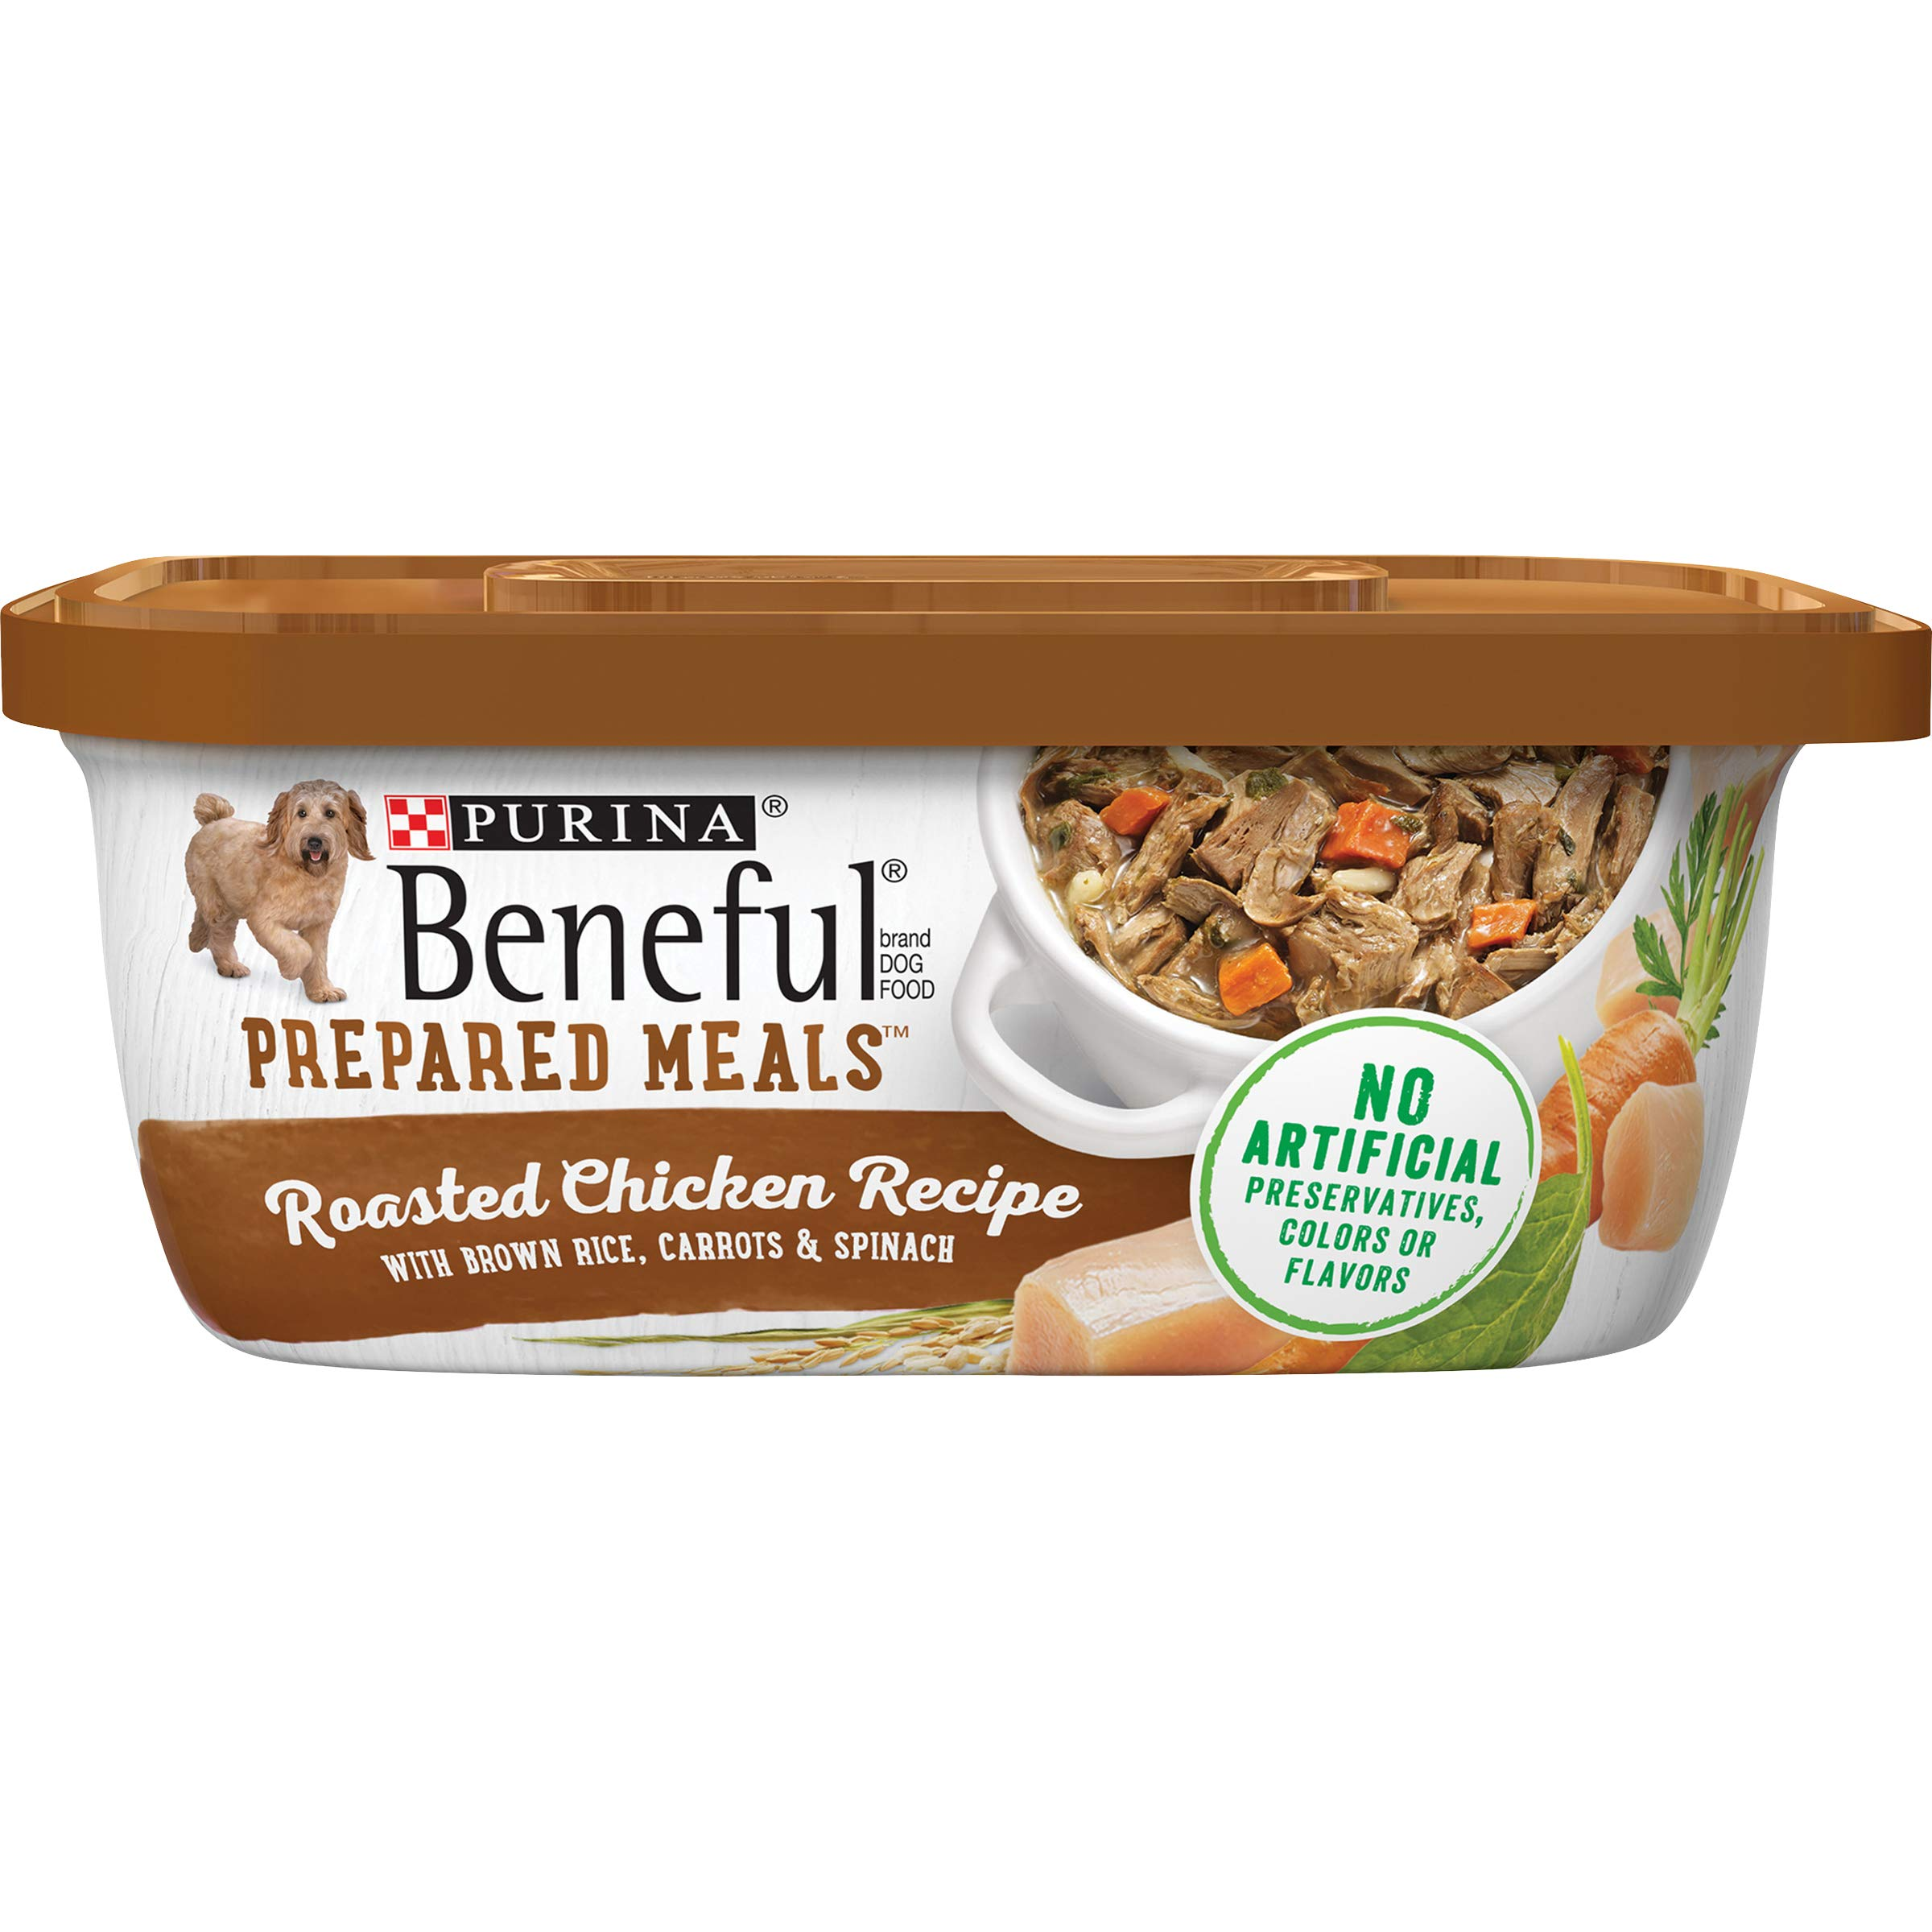 Purina Beneful Gravy Wet Dog Food, Prepared Meals Roasted Chicken Recipe - (8) 10 oz. Tubs